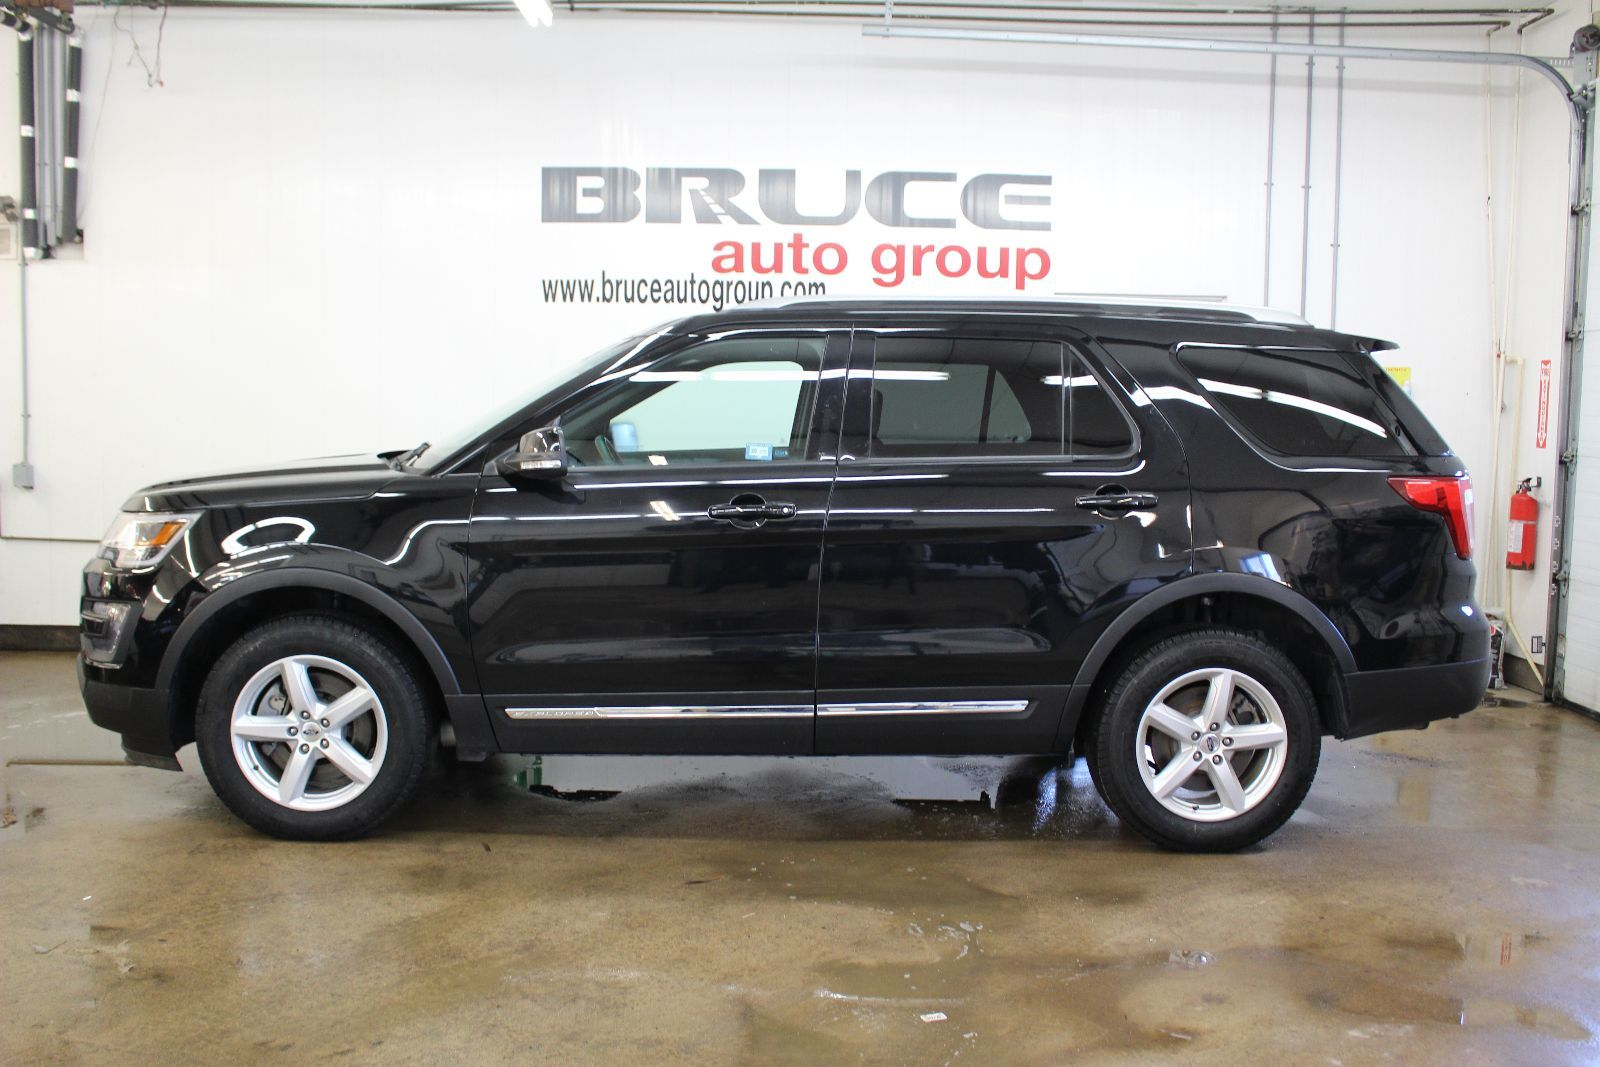 2016 ford explorer xlt 3 5l 6 cyl automatic awd xlt for sale pre owned bruce ford in middleton. Black Bedroom Furniture Sets. Home Design Ideas